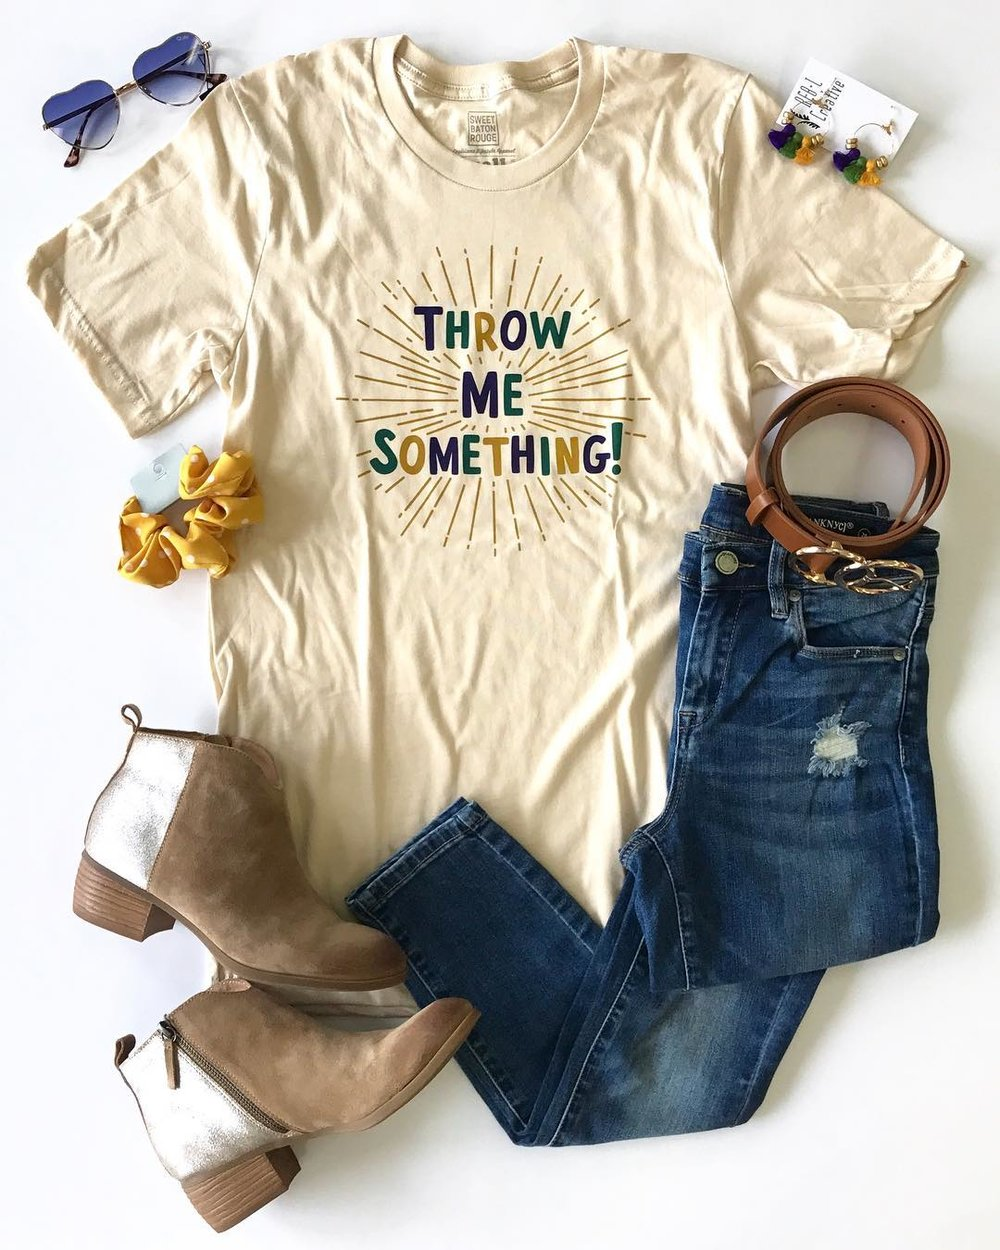 Shop this look at   Southern Accents Boutique  .